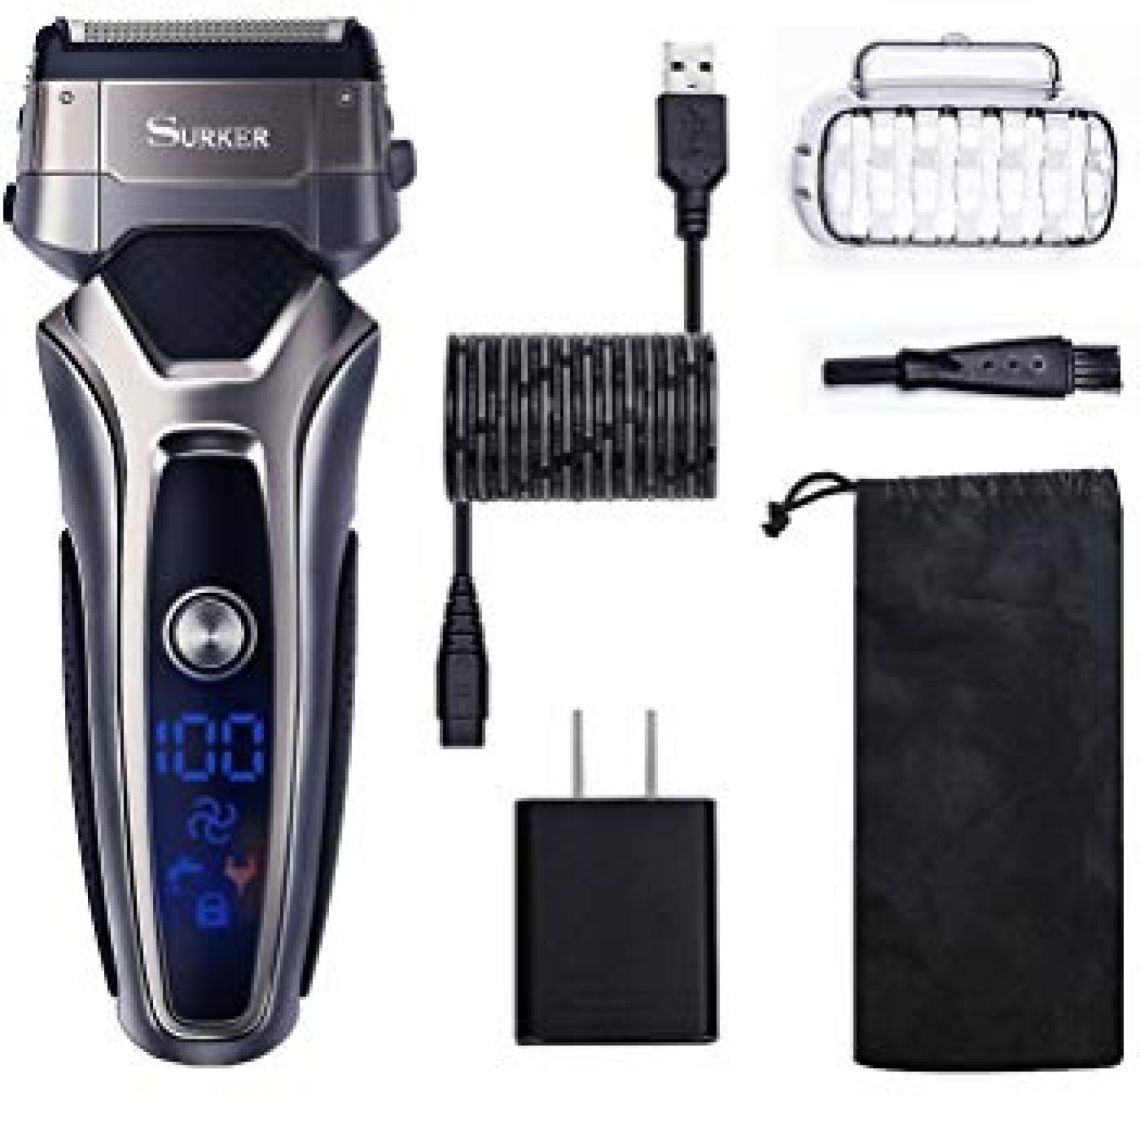 Amazon.com: SURKER Men's Electric Foil Shaver, Cordless Electric Shaver Razor Wet & Dry Rechargeable Beard Trimmer with LCD Display Electric Shaver for Men - Waterproof Best Gift for Husband, Dad and Boyfriend: Beauty